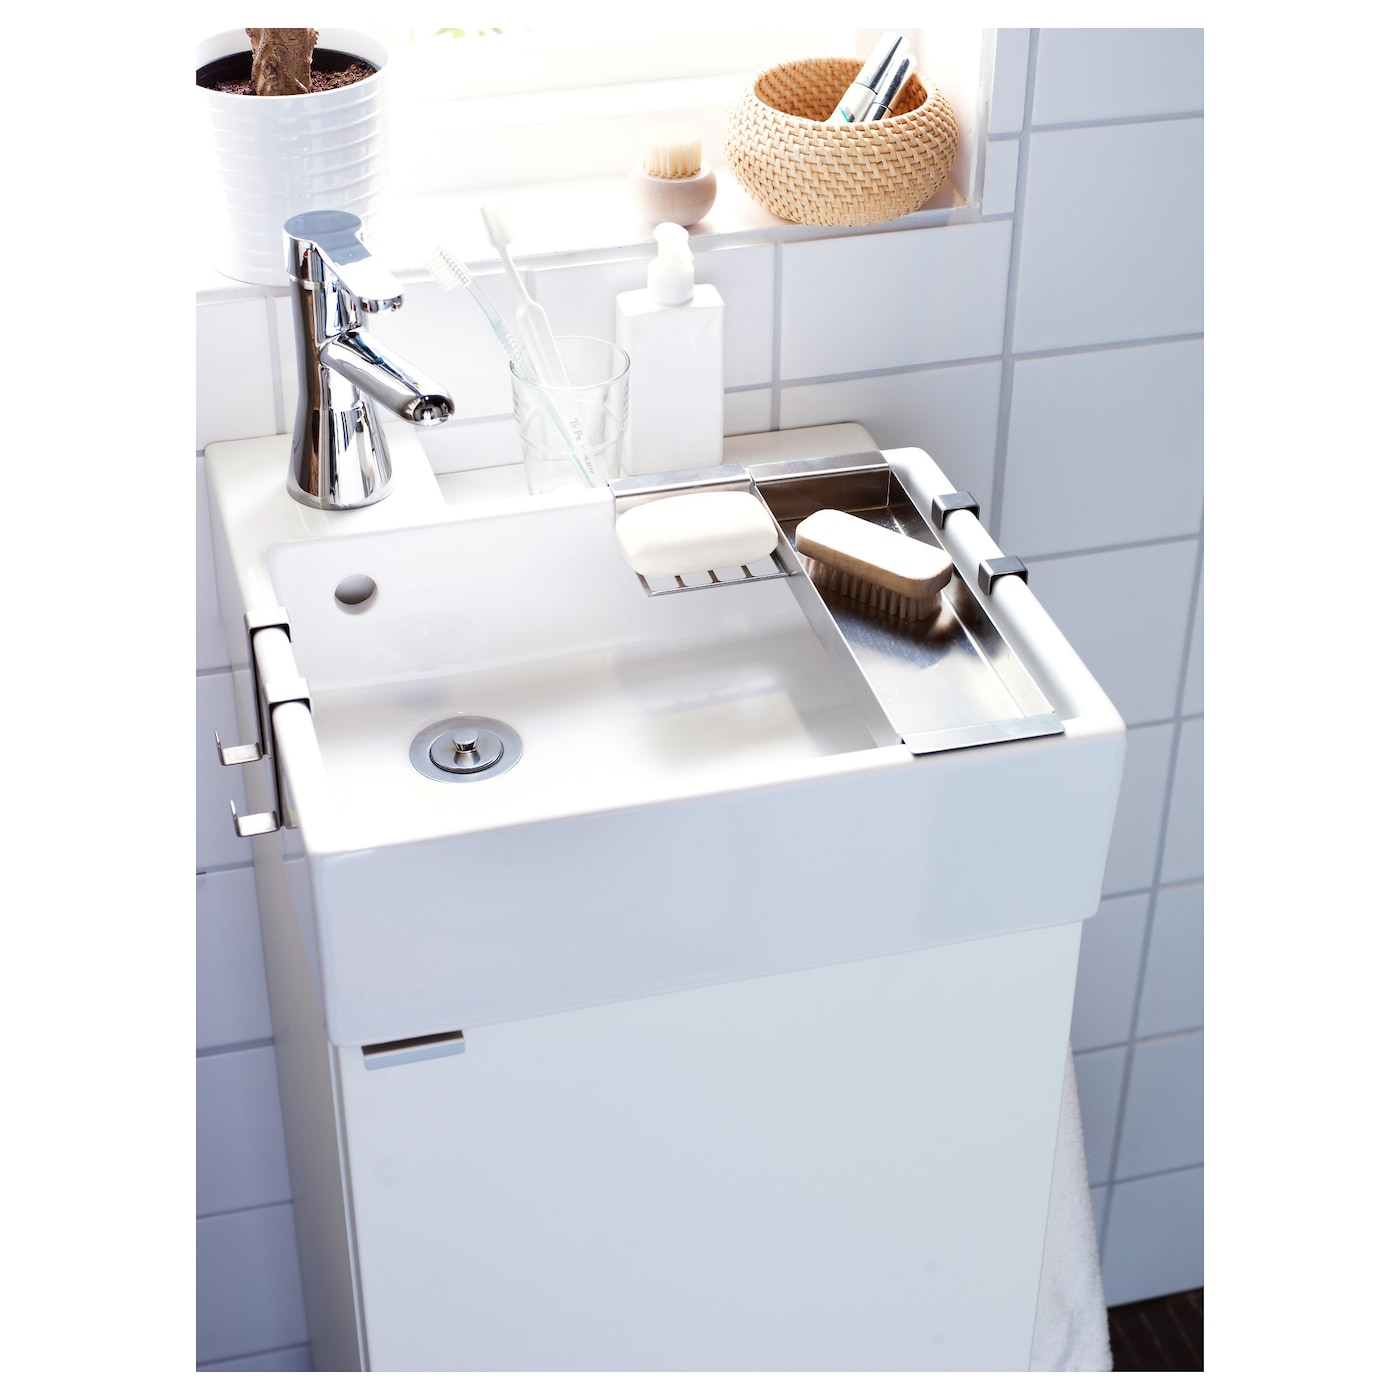 lill ngen wash basin cabinet with 1 door white 40x38x64 cm ikea. Black Bedroom Furniture Sets. Home Design Ideas